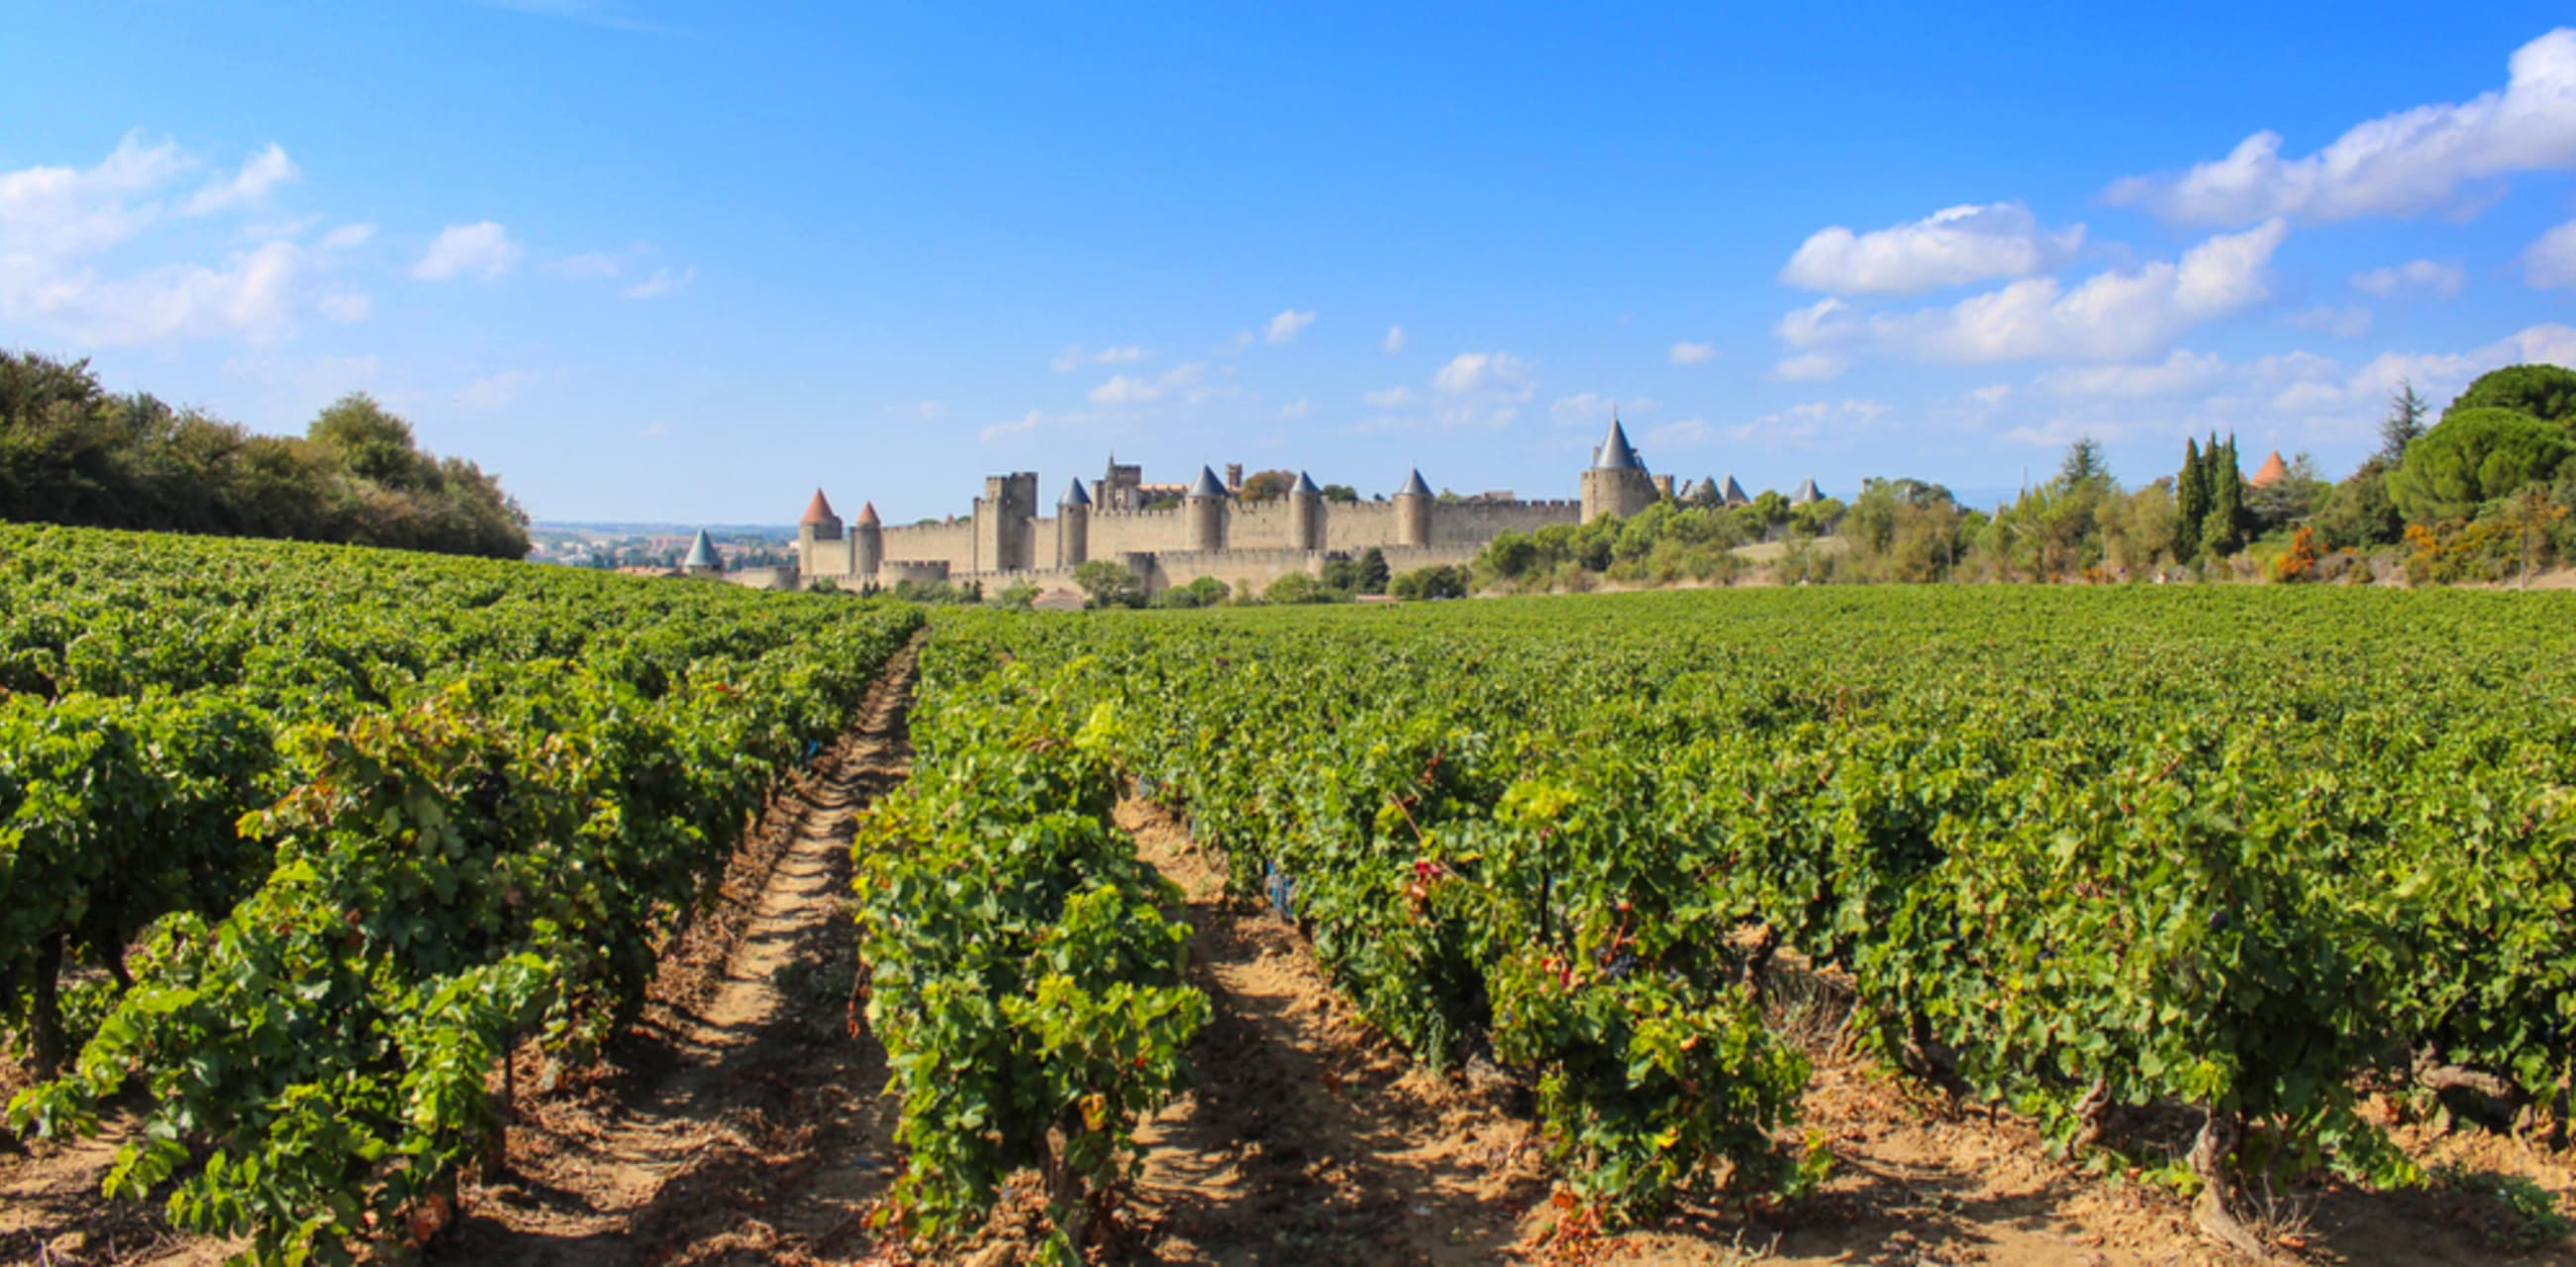 Languedoc-Roussillon cover image